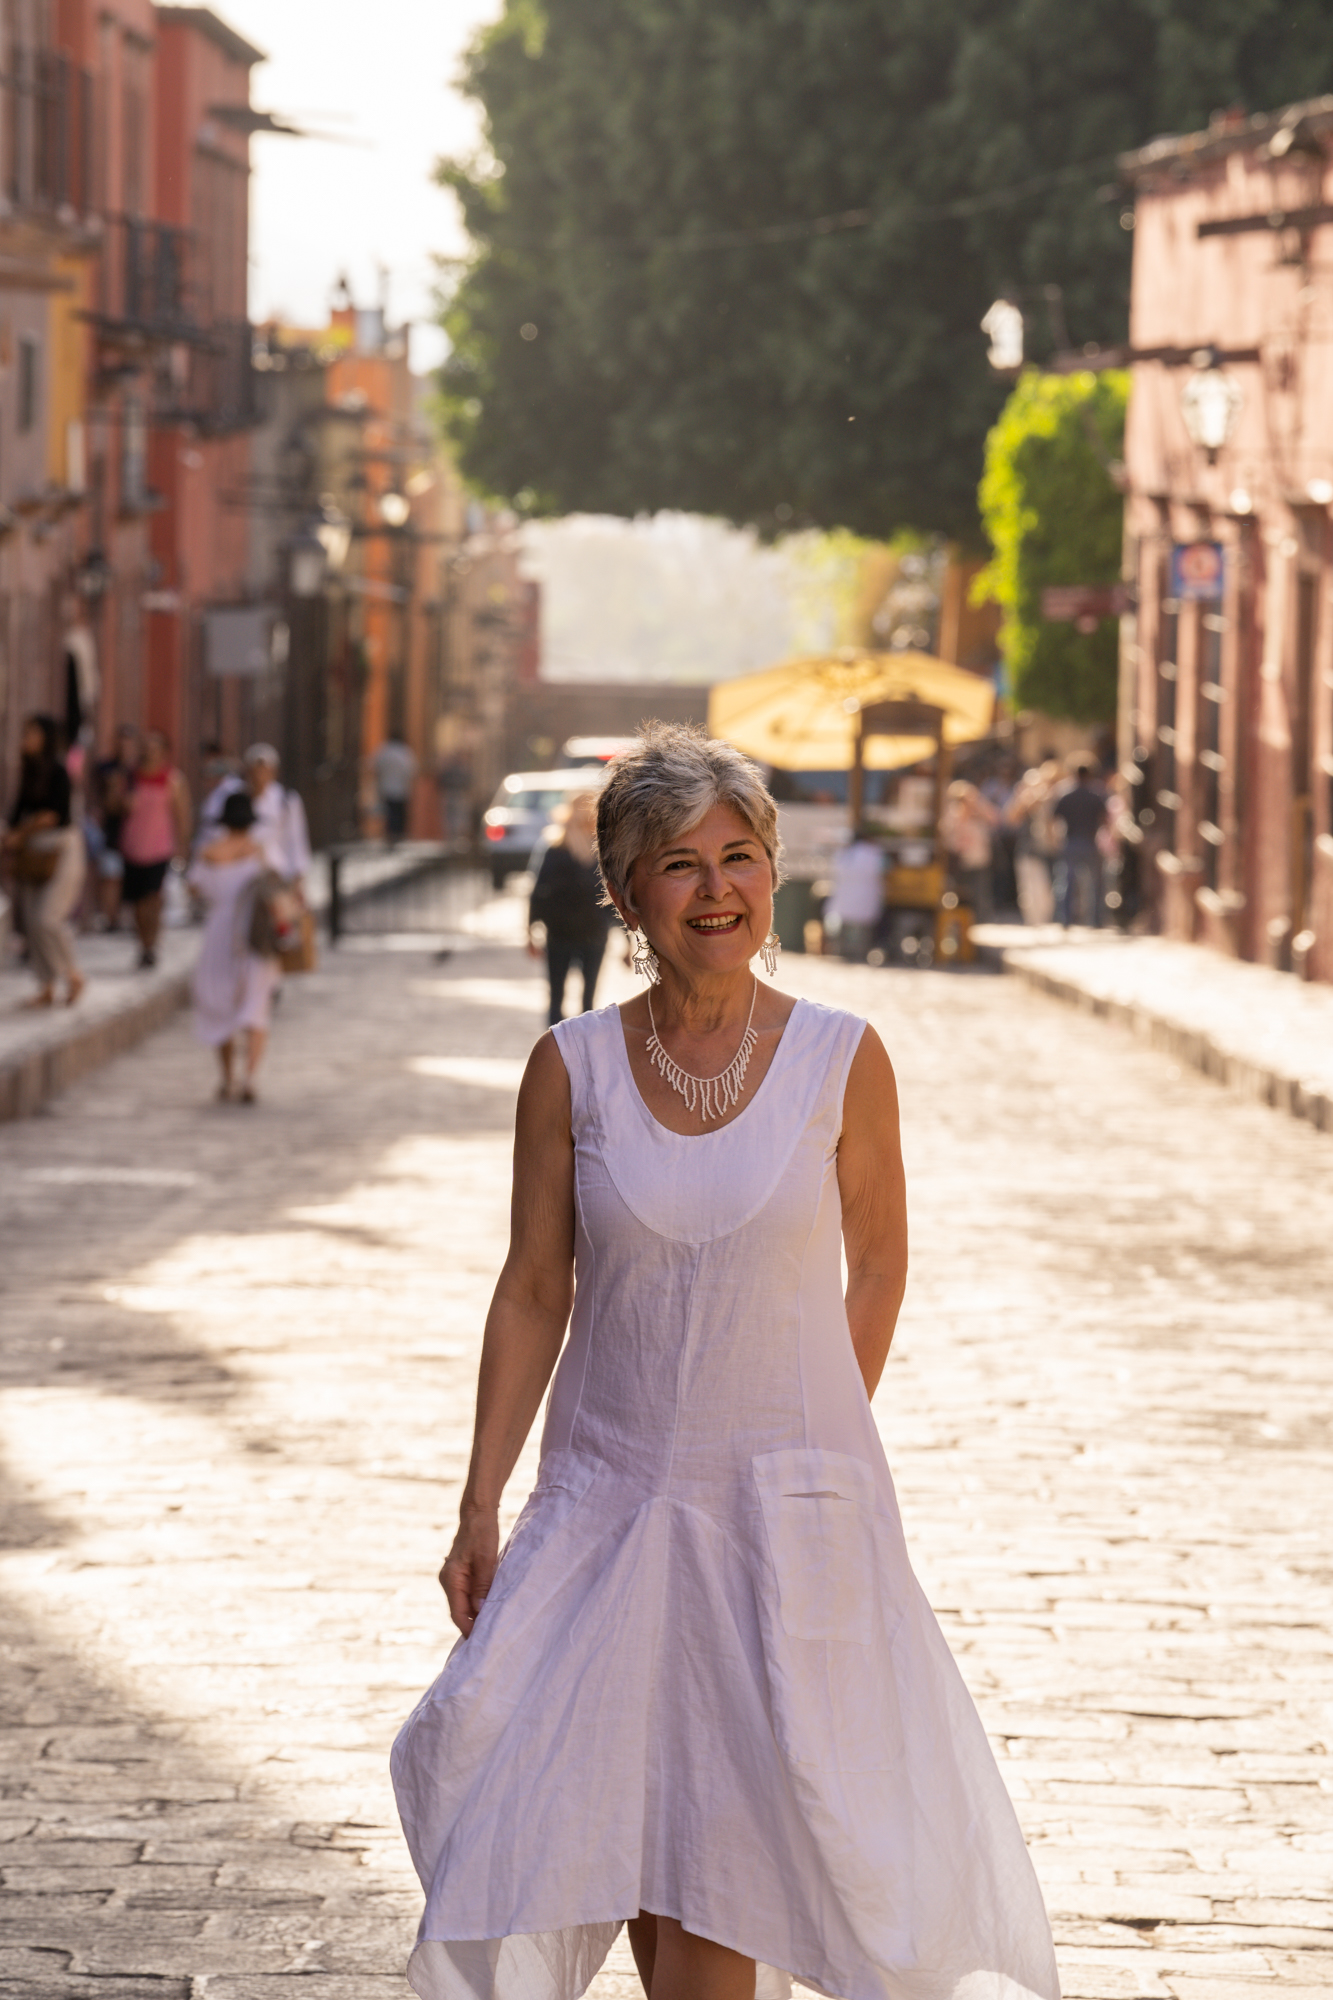 Photoshoot session in San Miguel de Allende with Suzanne and Leo-7.jpg